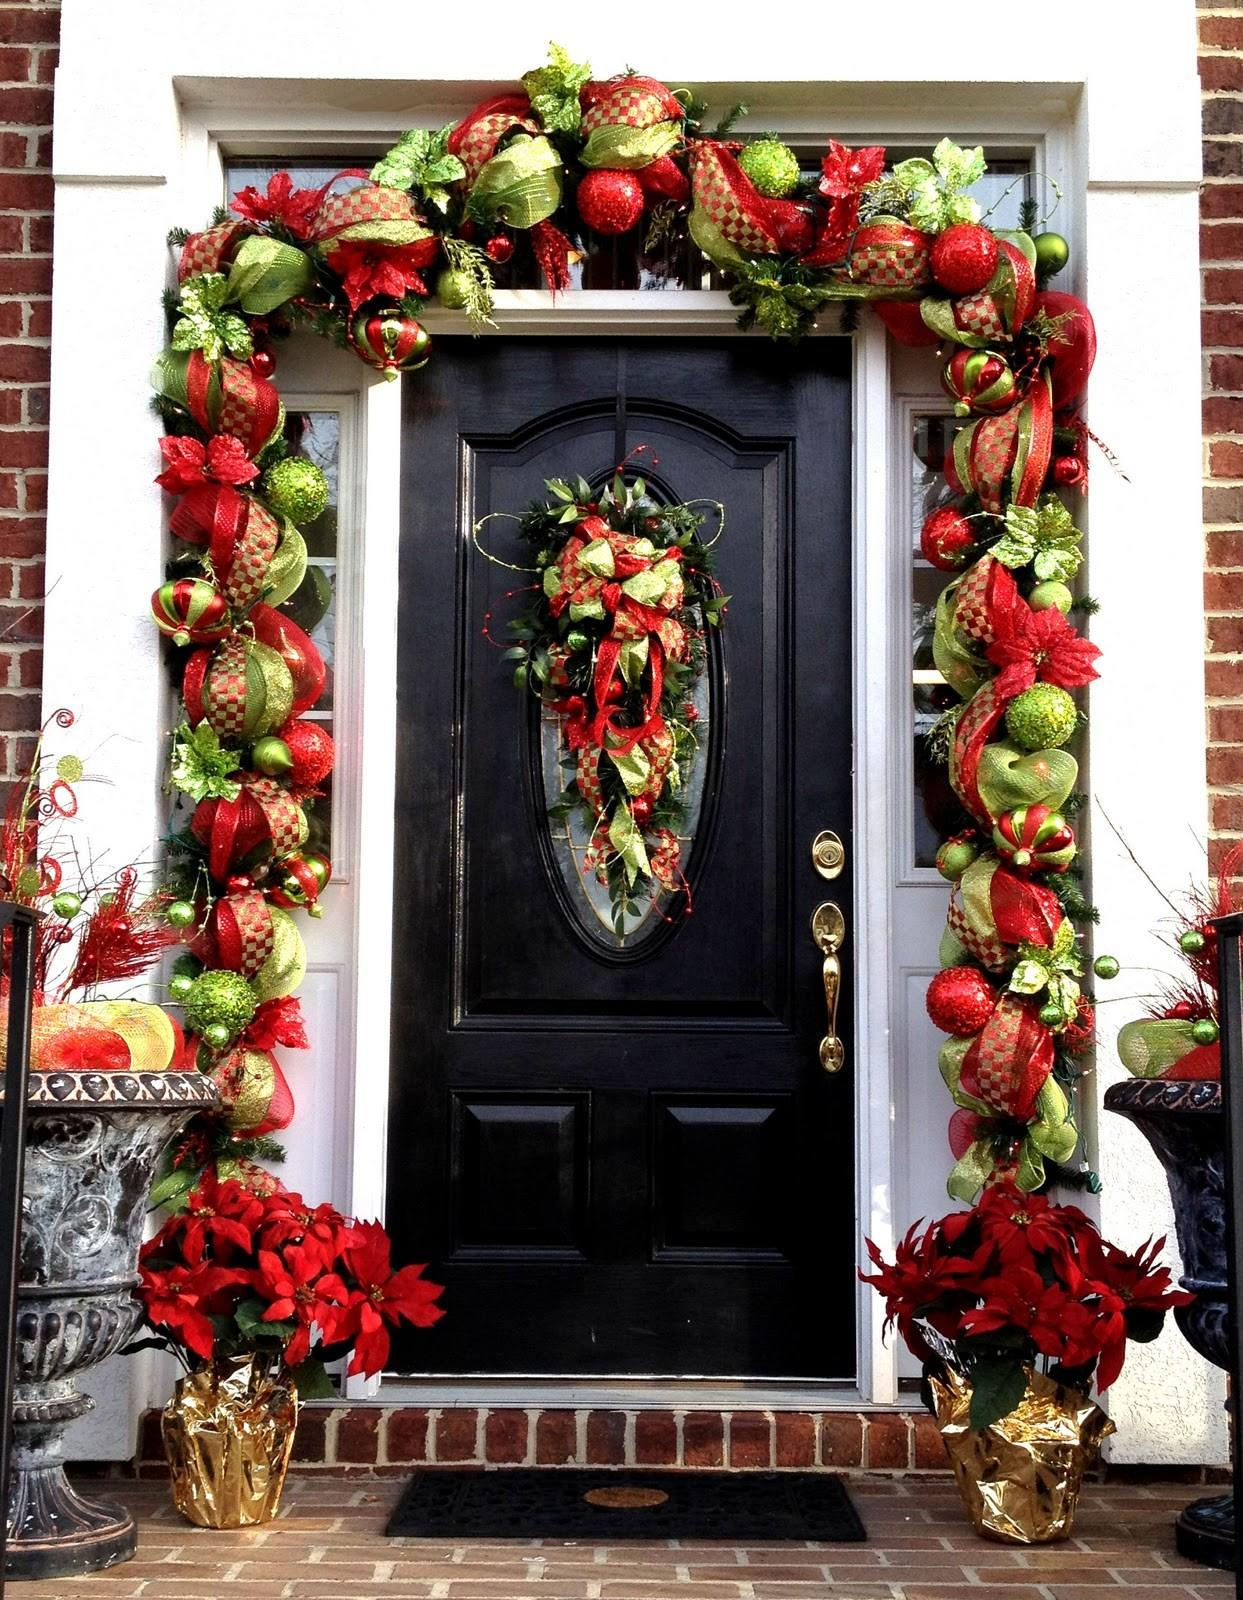 Best Outdoor Christmas Decorations 2016